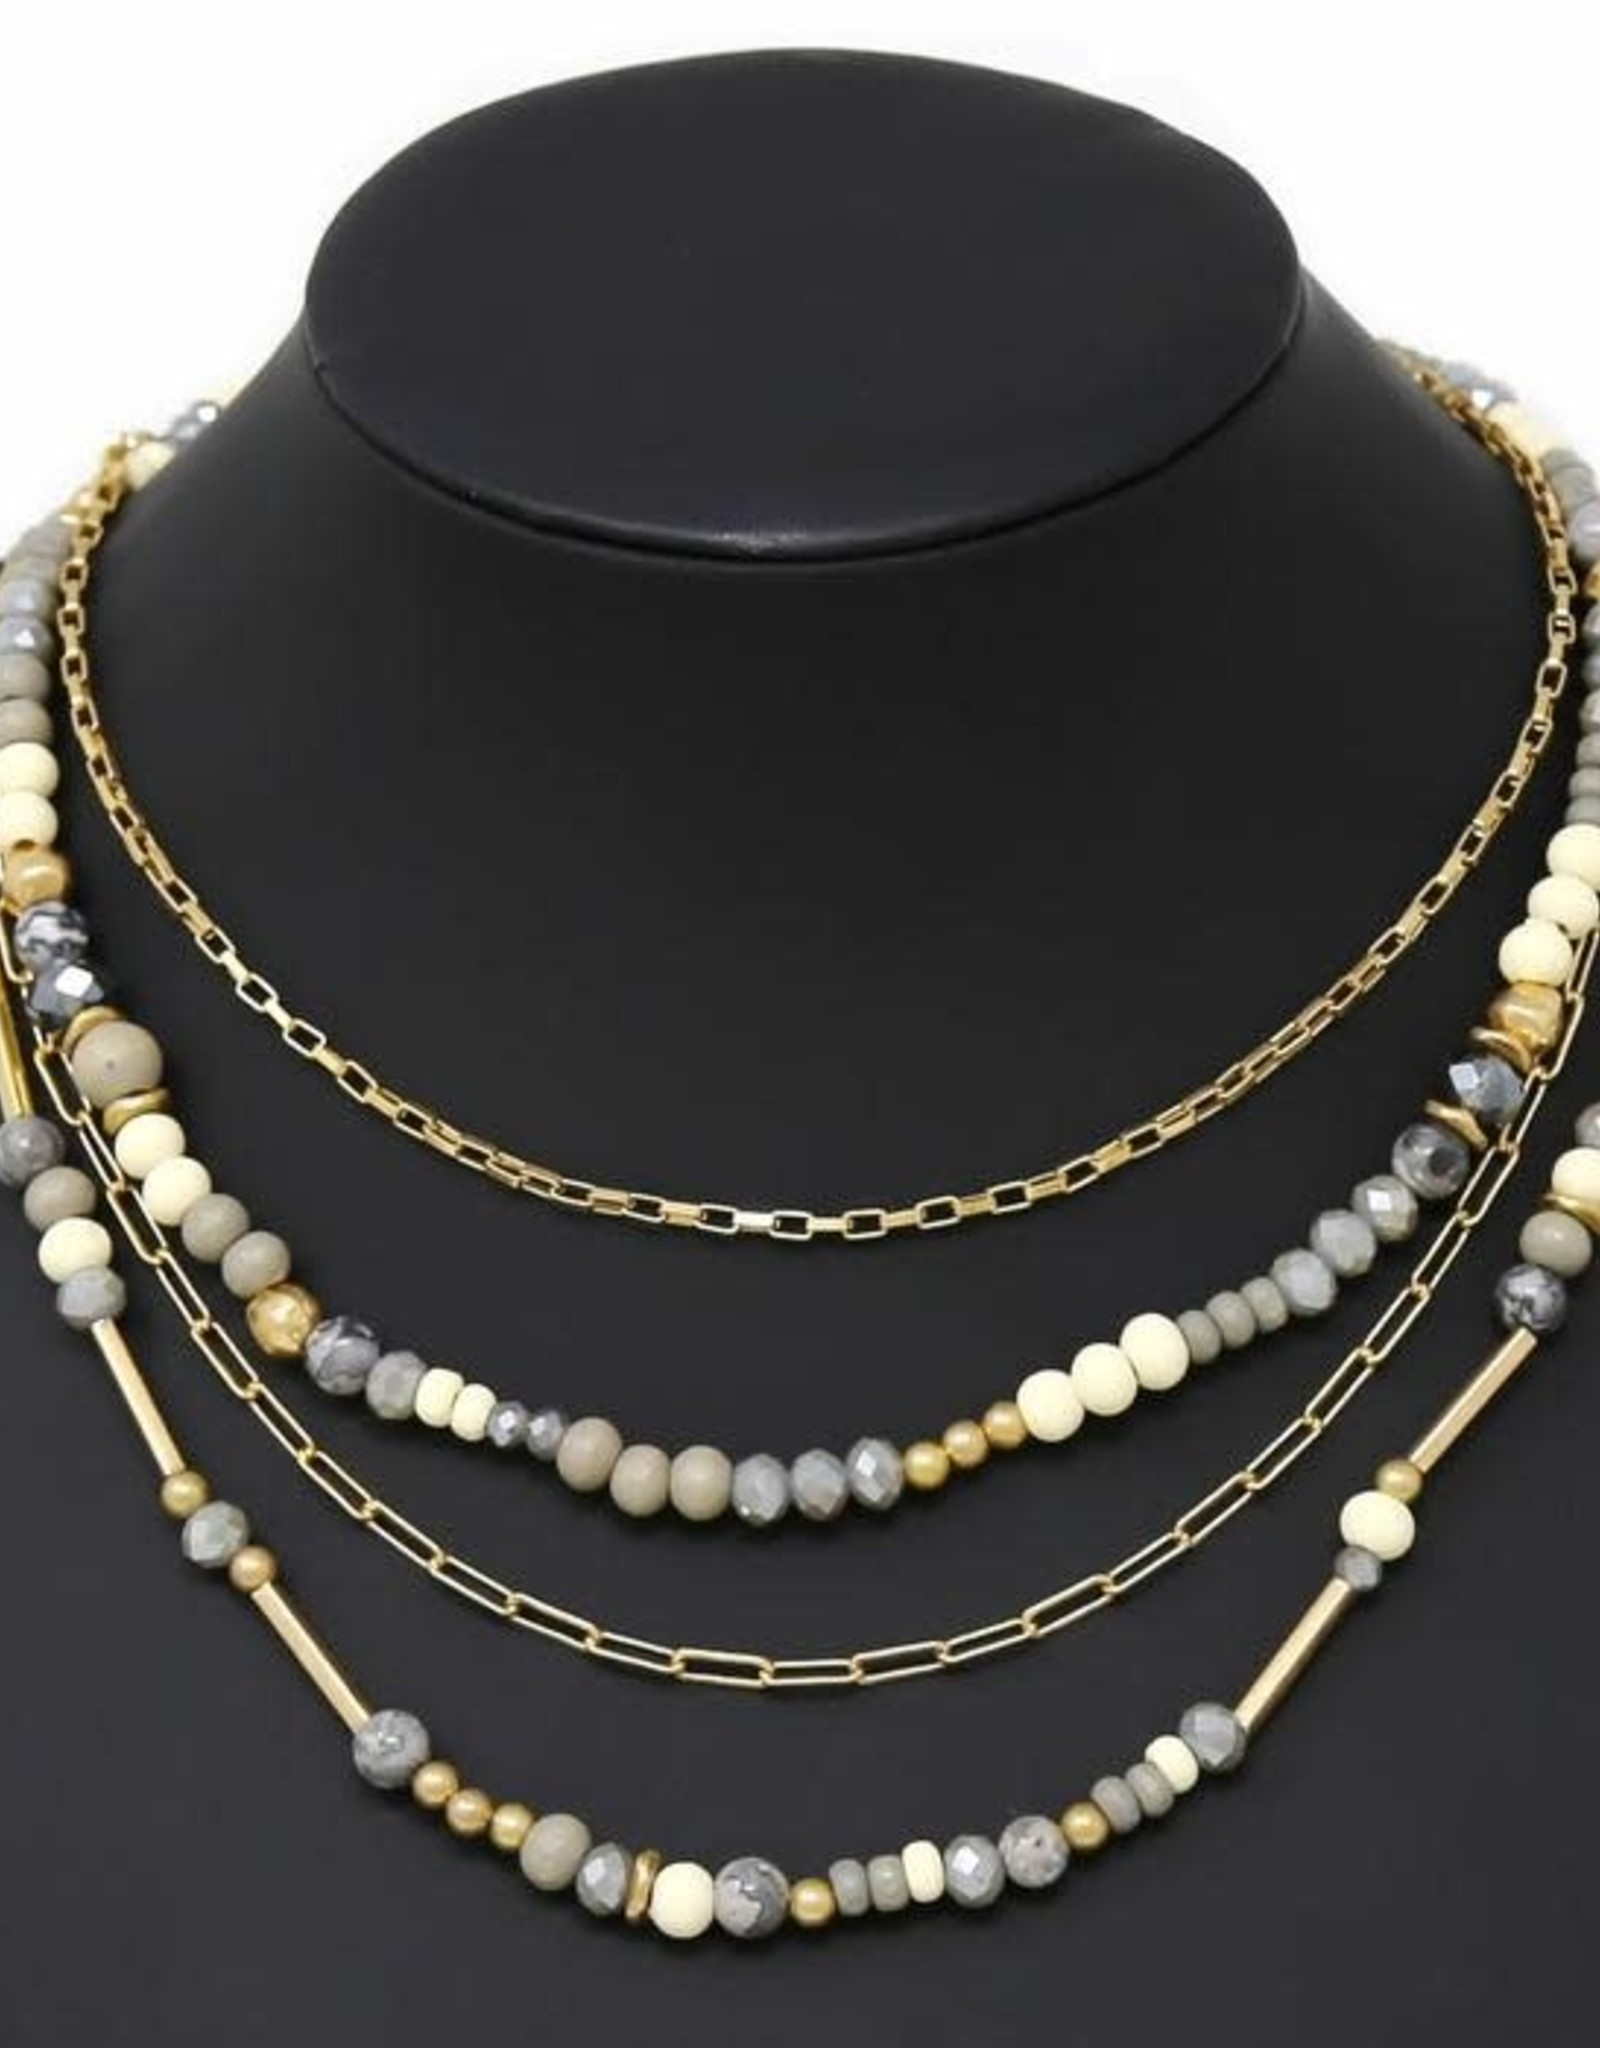 Natural Stone/Wood/Glass Beaded Layered Short Necklace